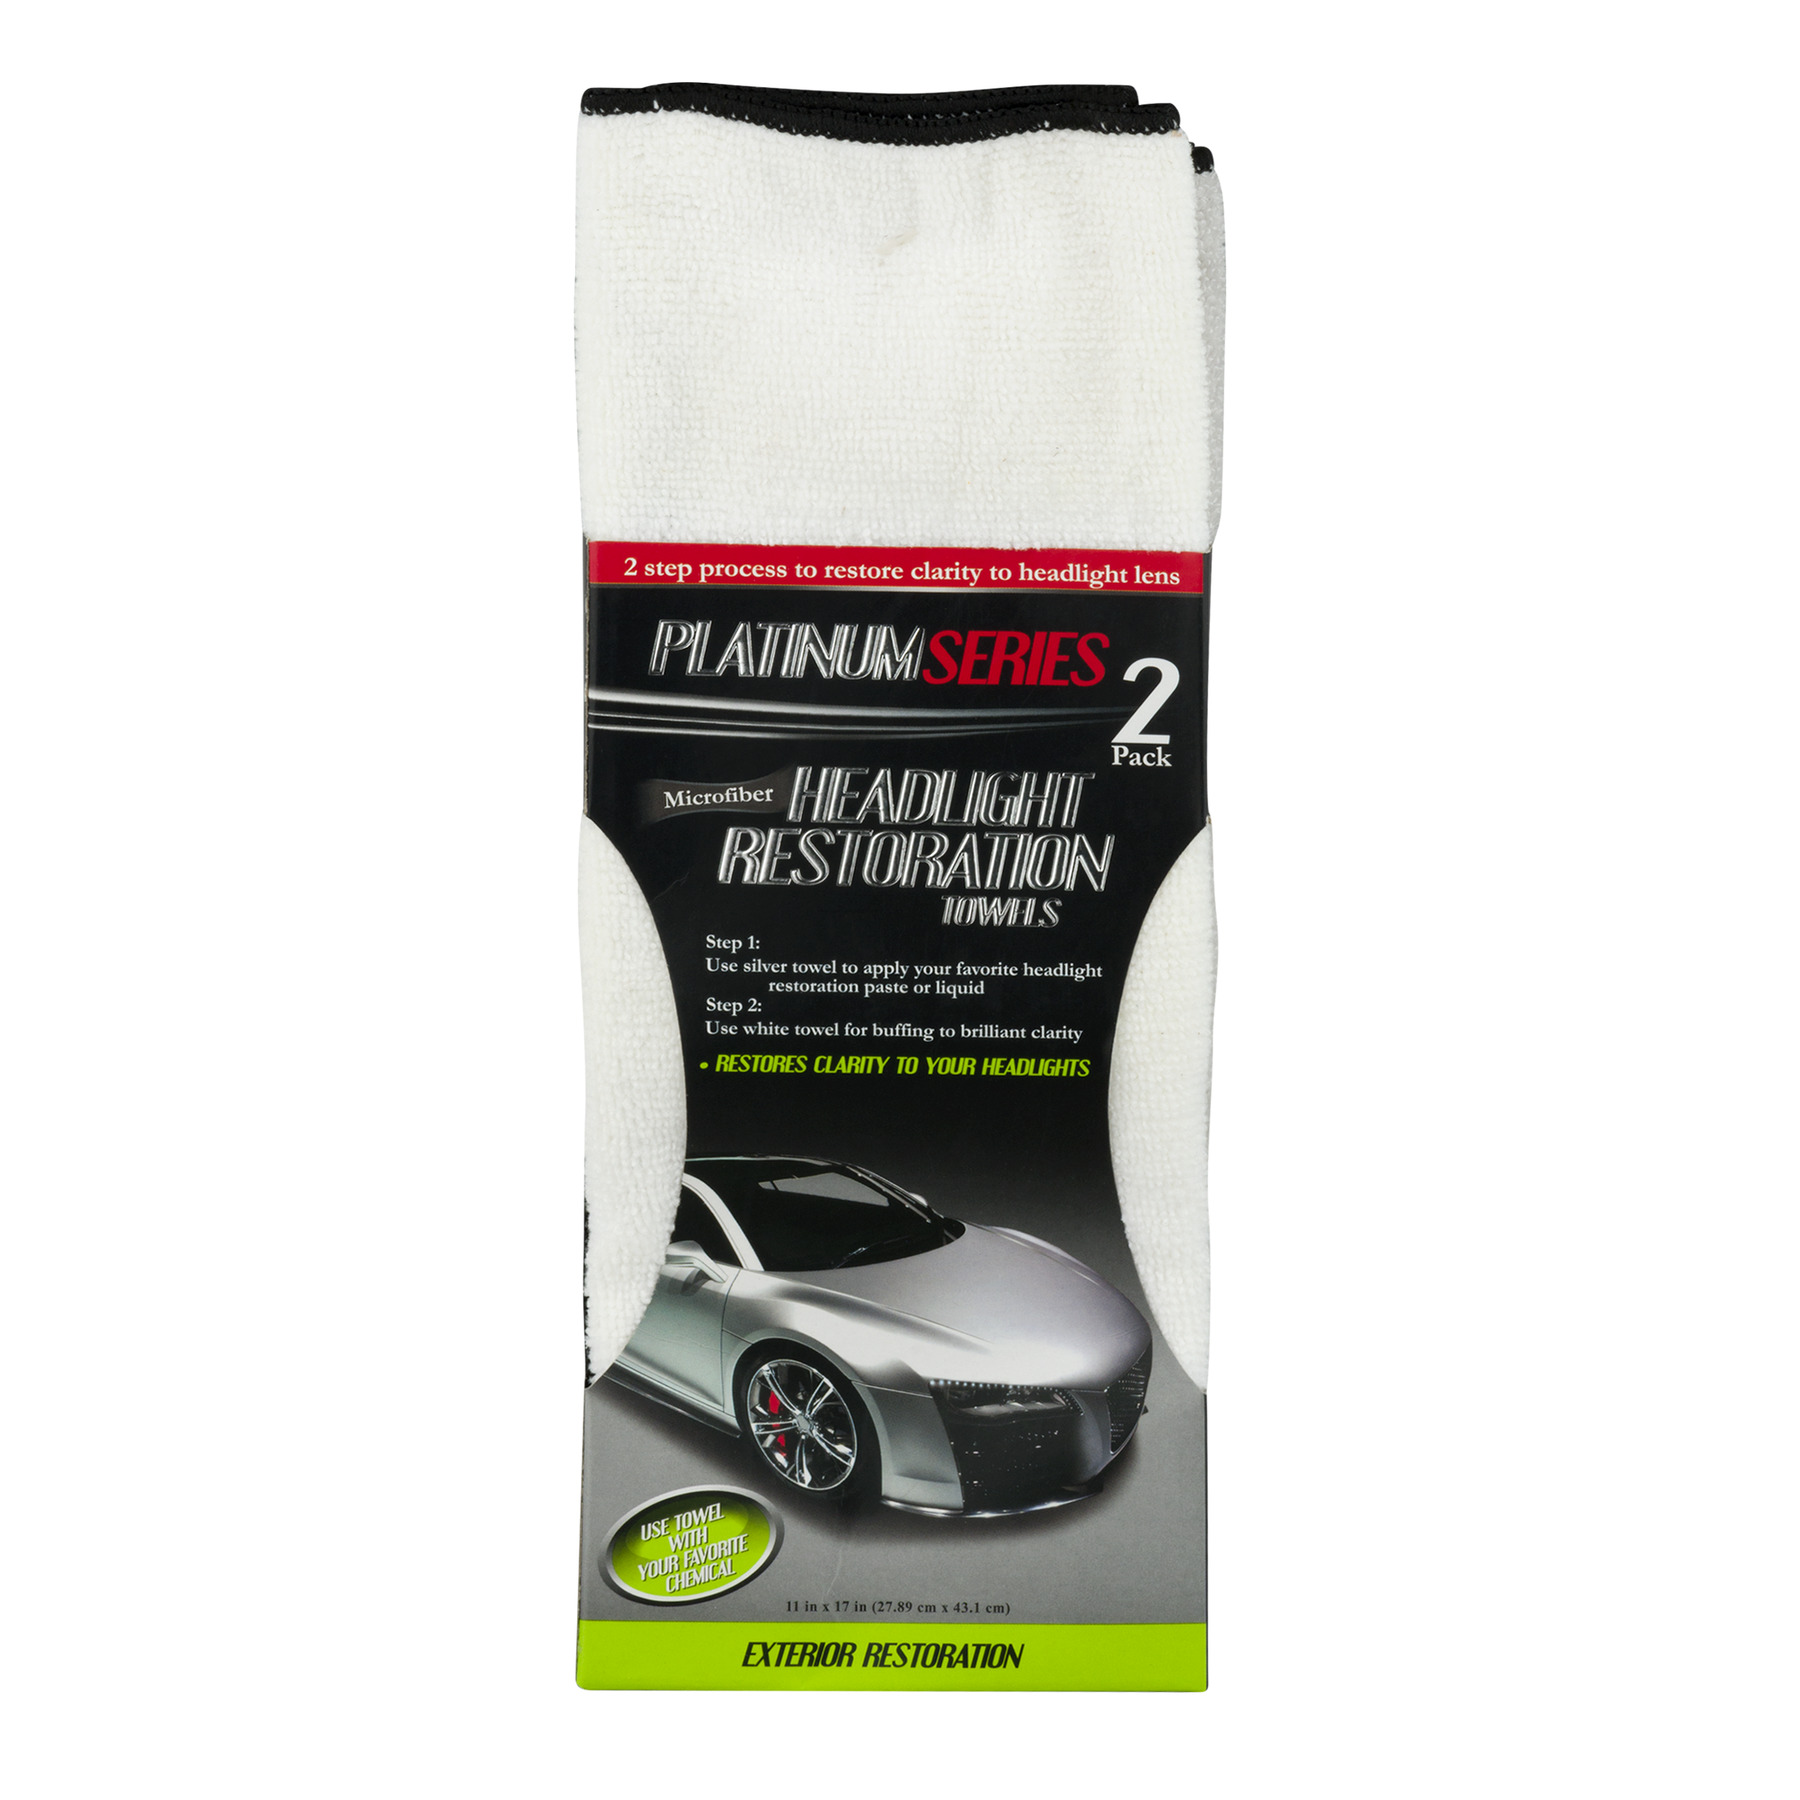 Microfiber Headlight Restoration Towels Platinum Series, 2.0 PACK